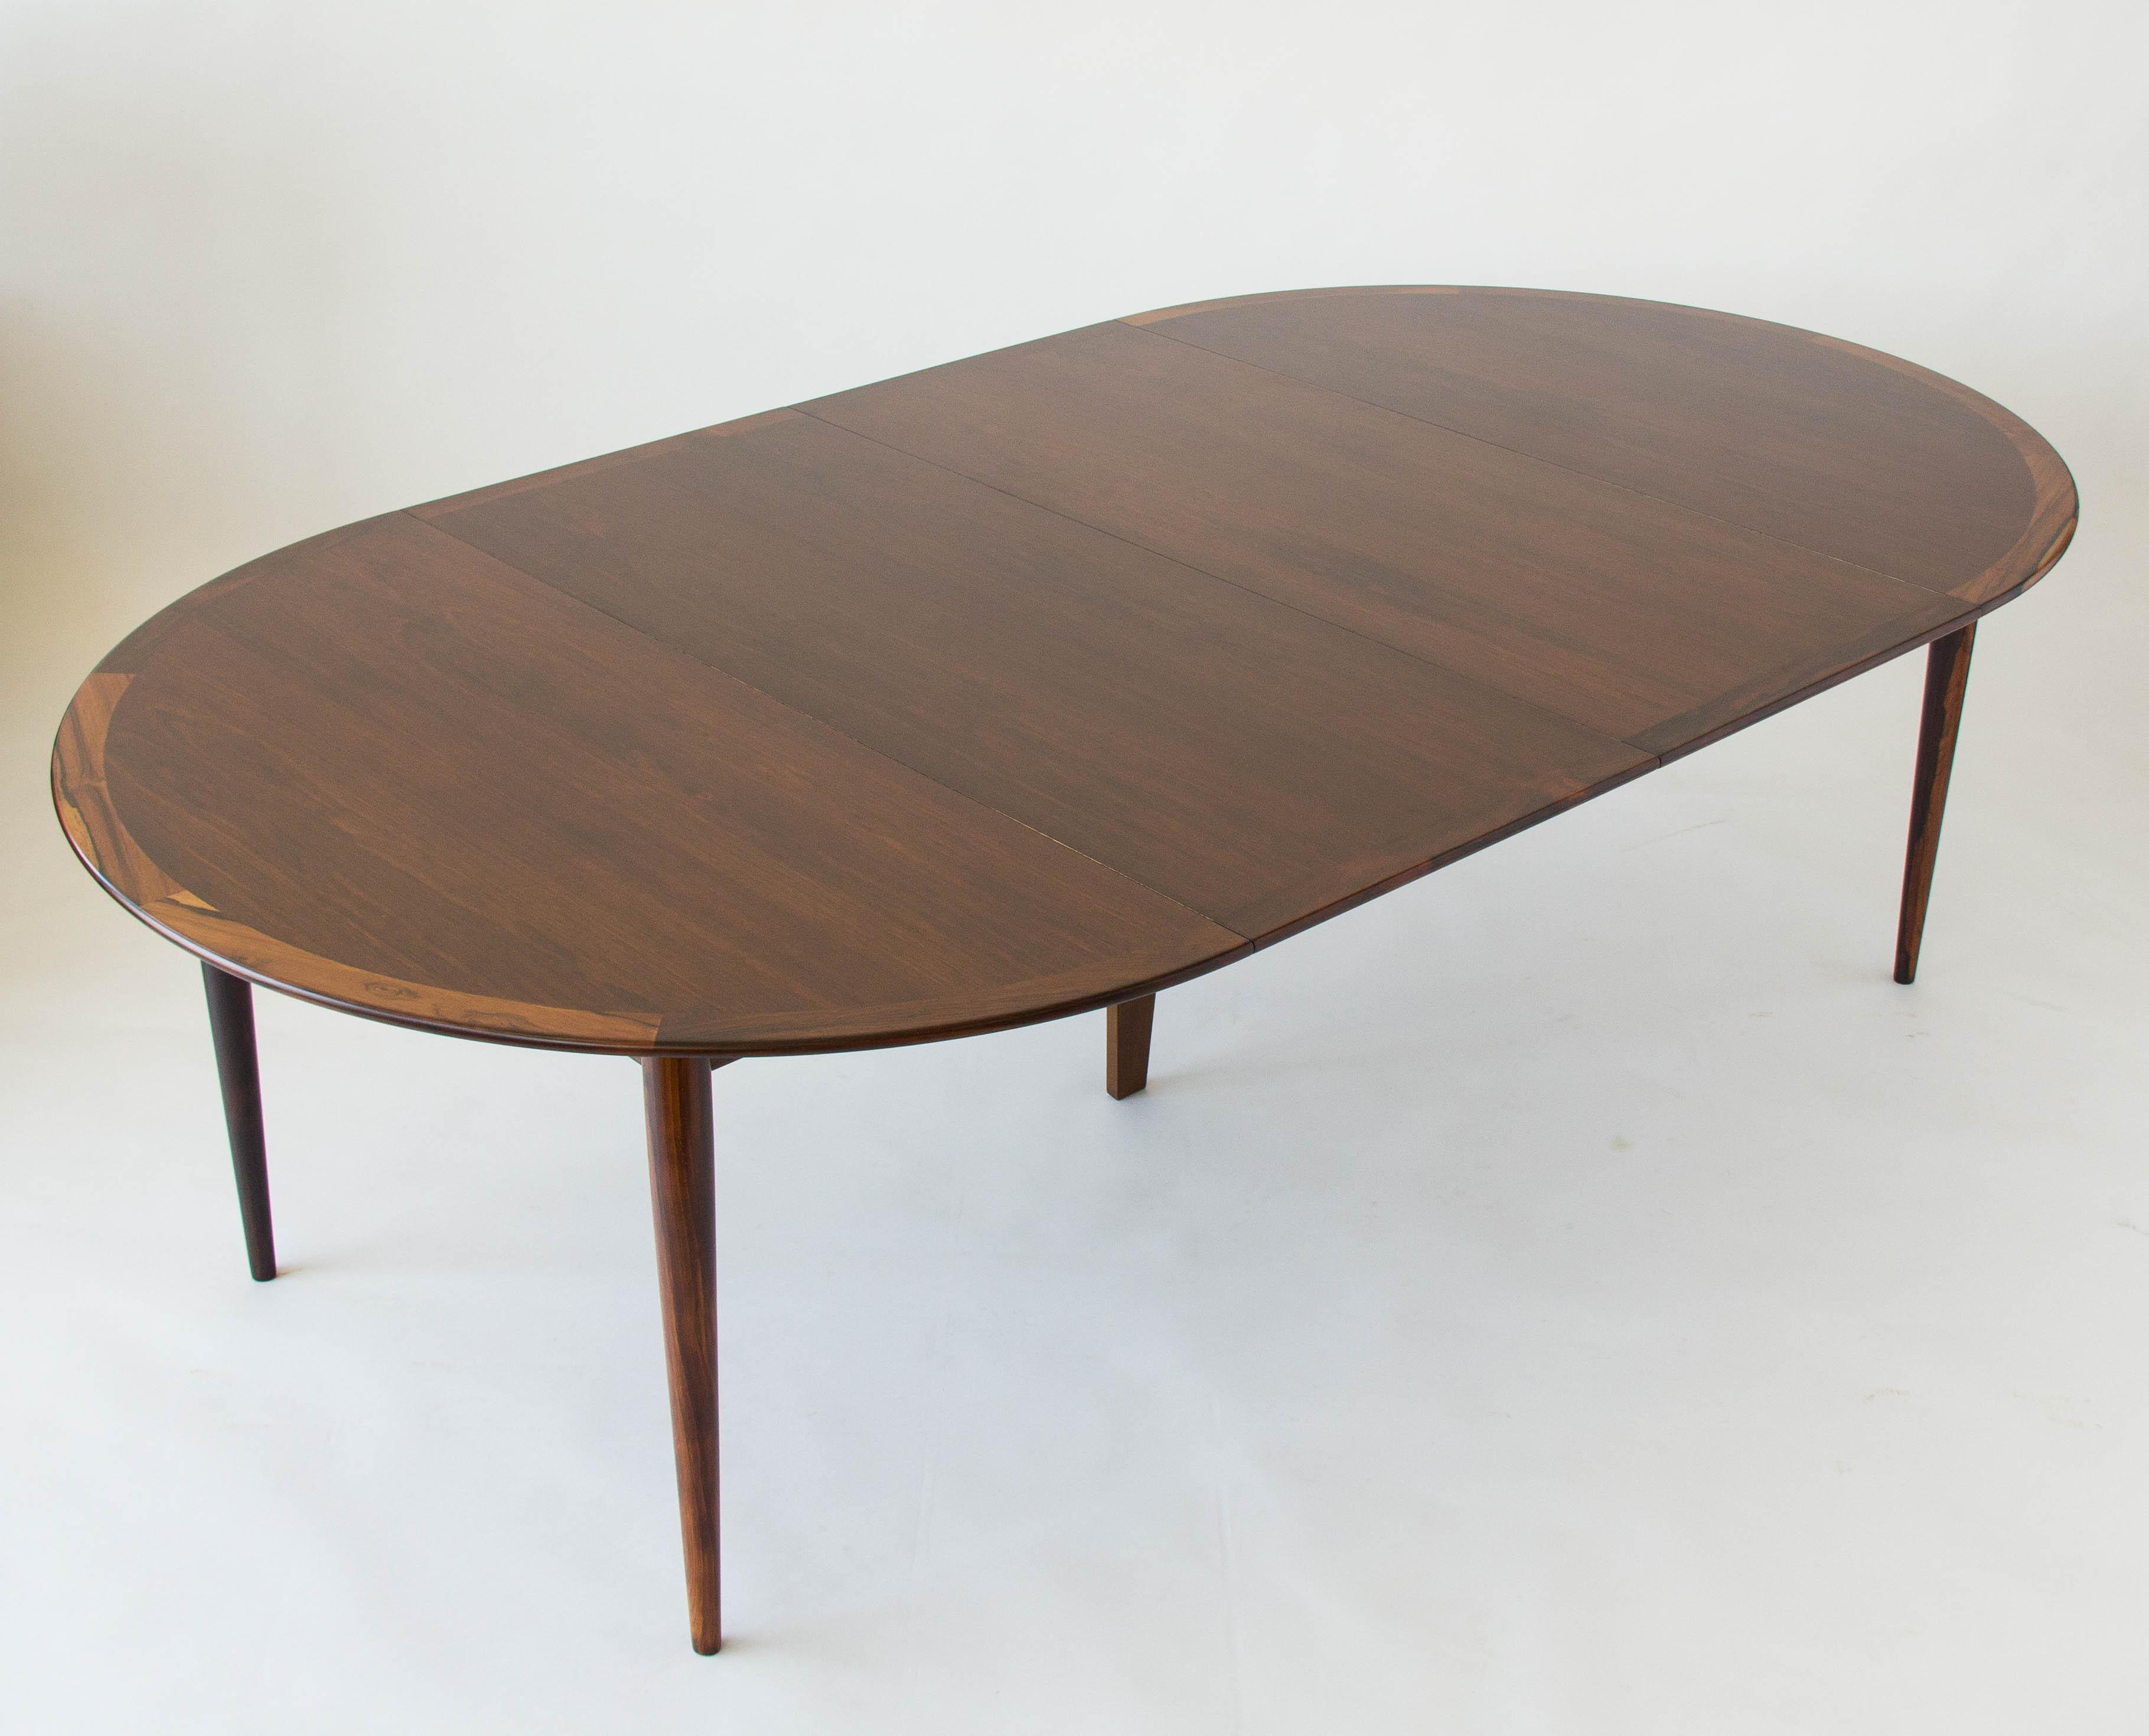 Beau Rosewood Round Dining Table By Grete Jalk For P. Jeppesen   Image 6 Of 7